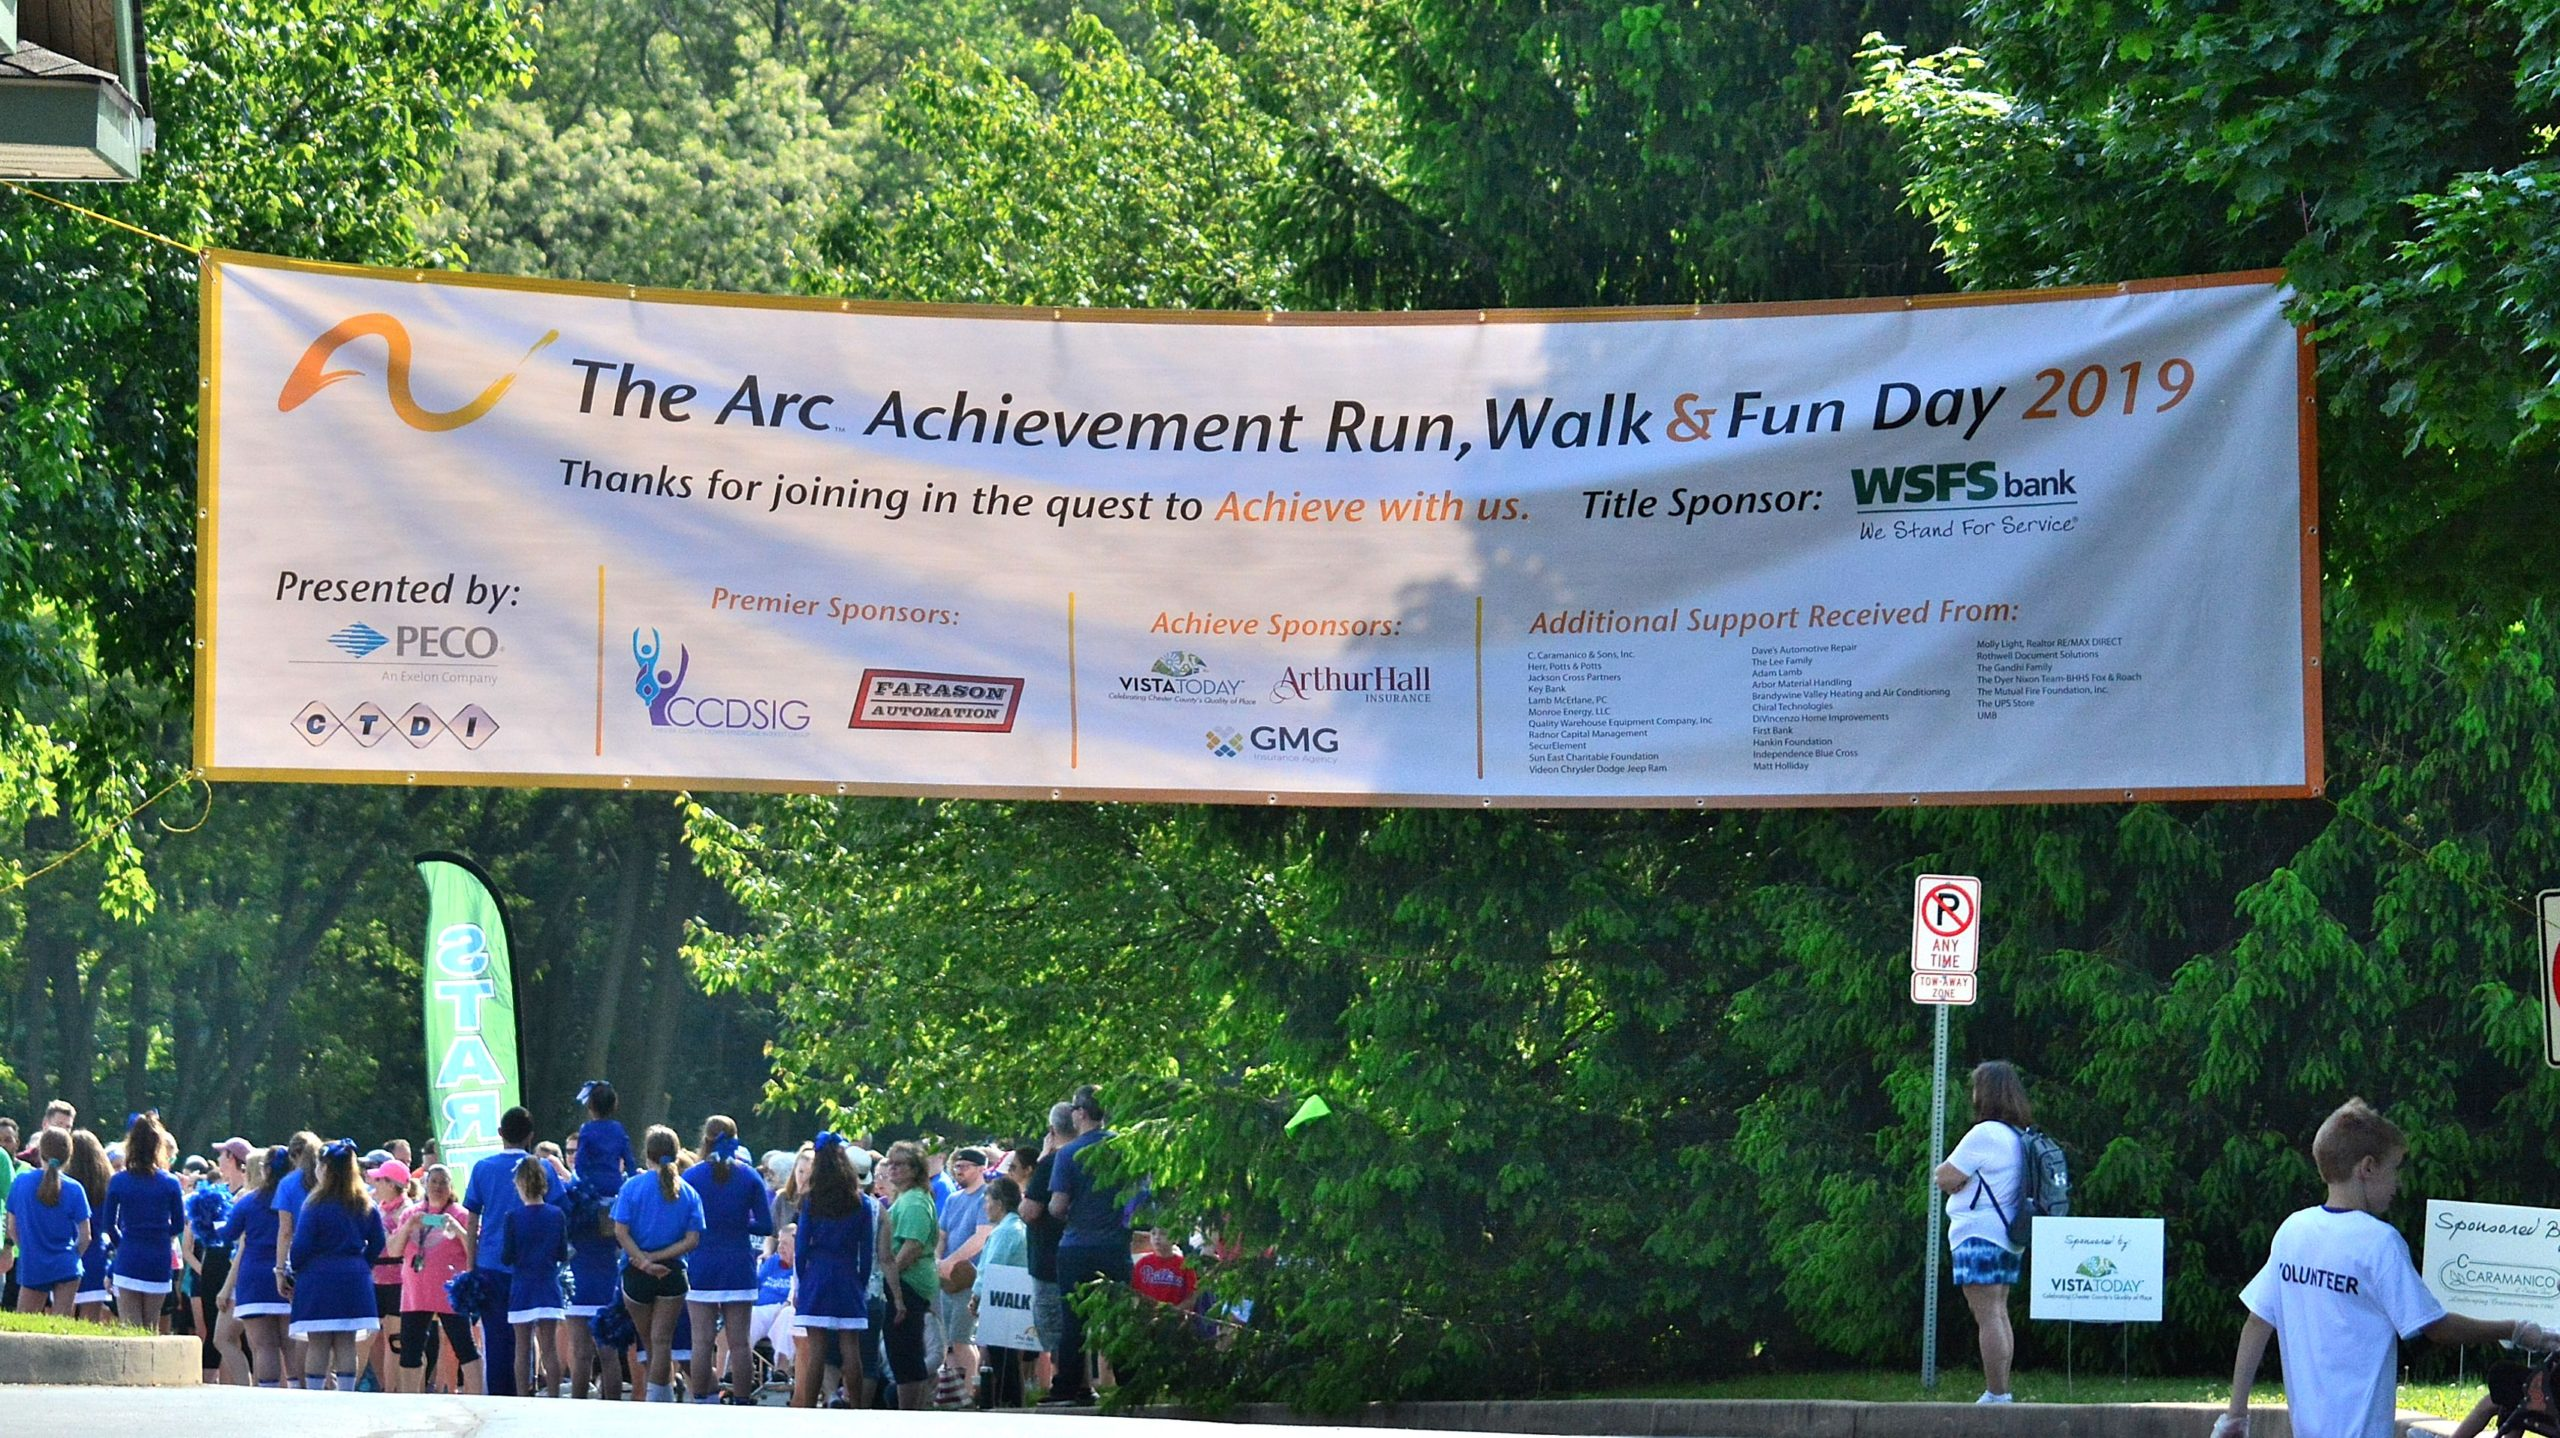 Arc Achievement Run, Title Sponsor WSFS Bank Raise $100,000 for Individuals with Disabilities